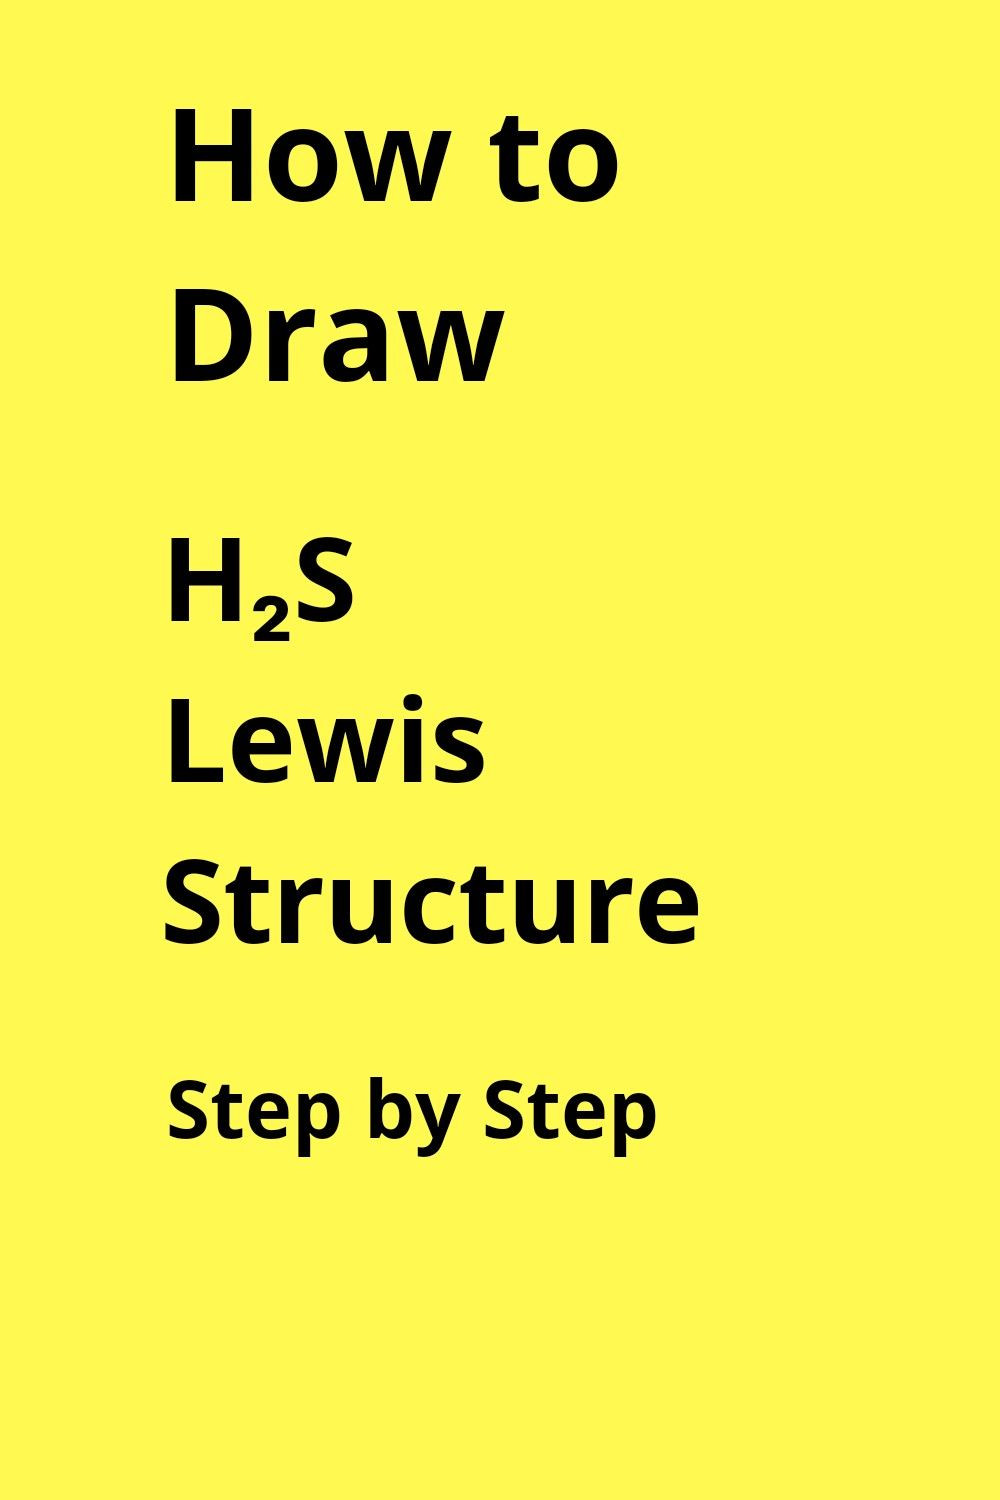 Lewis Dot Structure Practice Worksheet H2s Lewis Structure In 2020